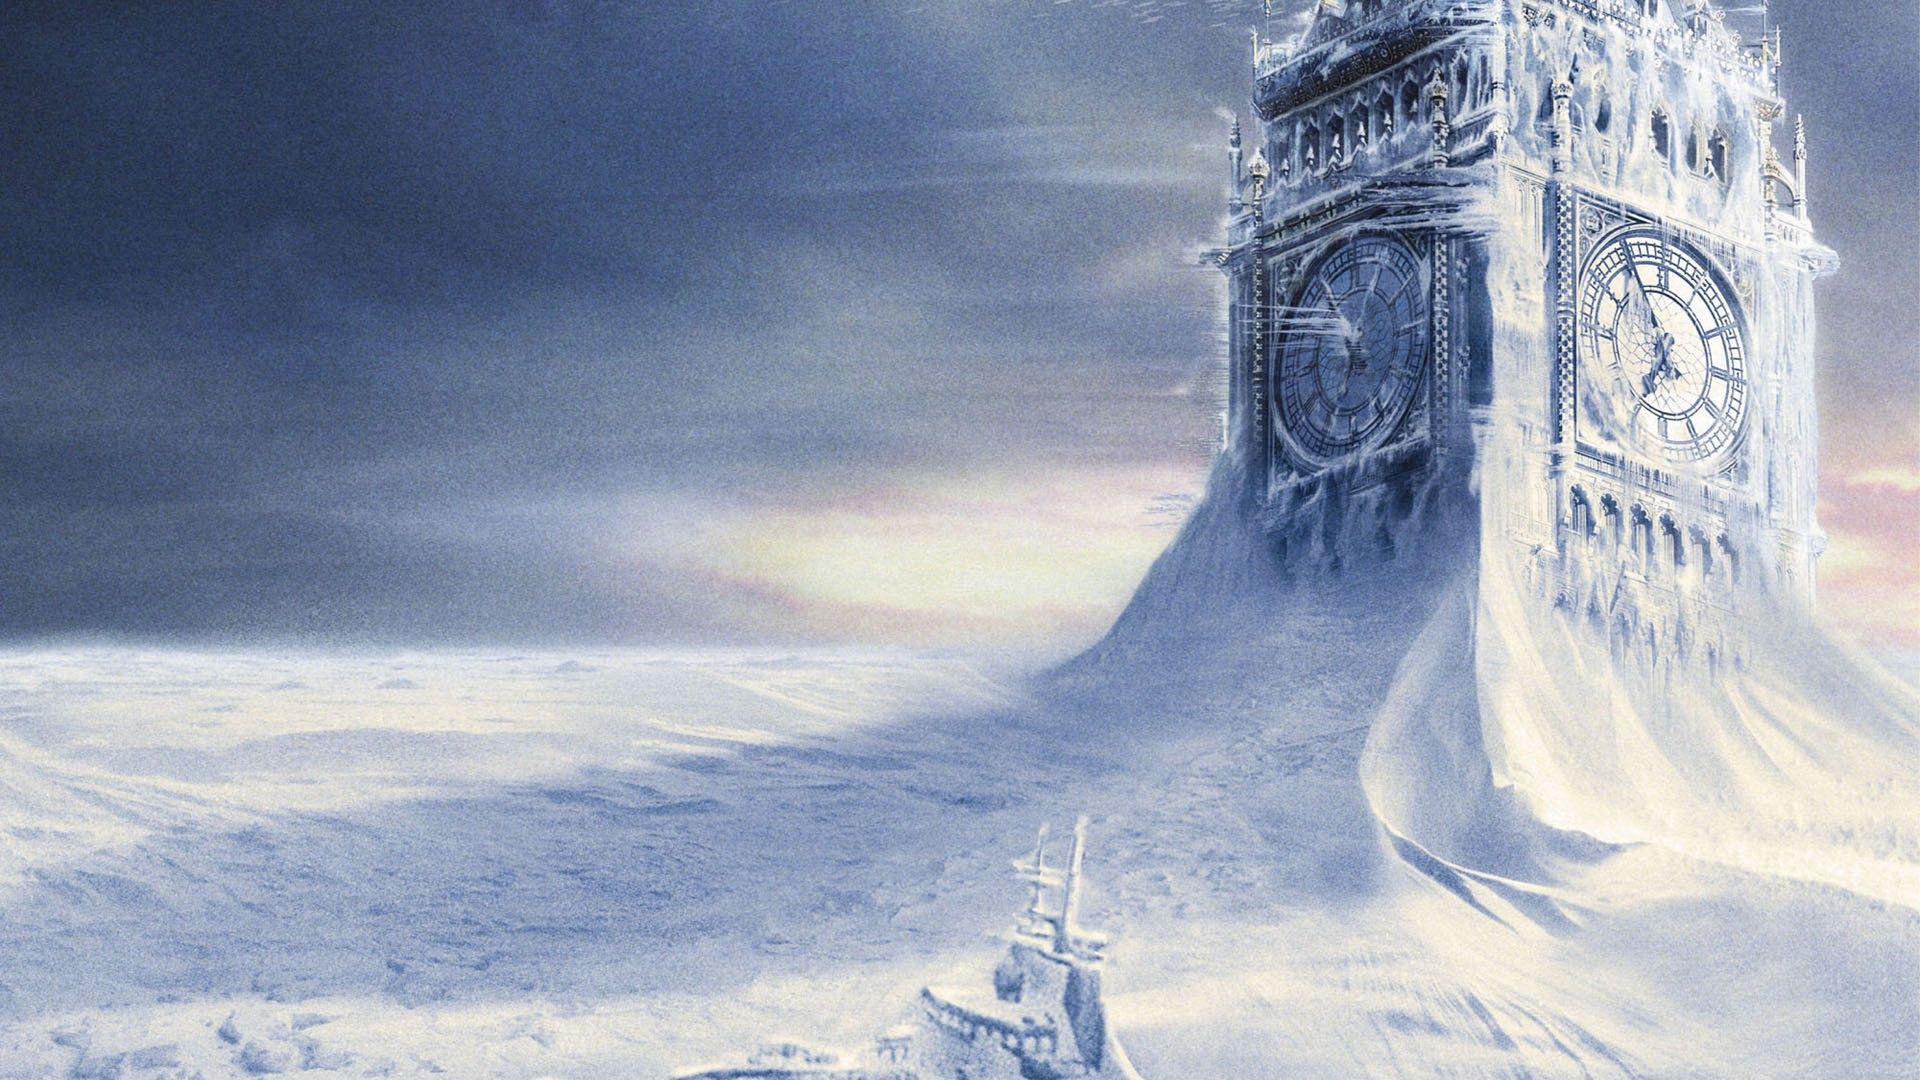 The Day After Tomorrow Wallpapers | HD Wallpapers Base